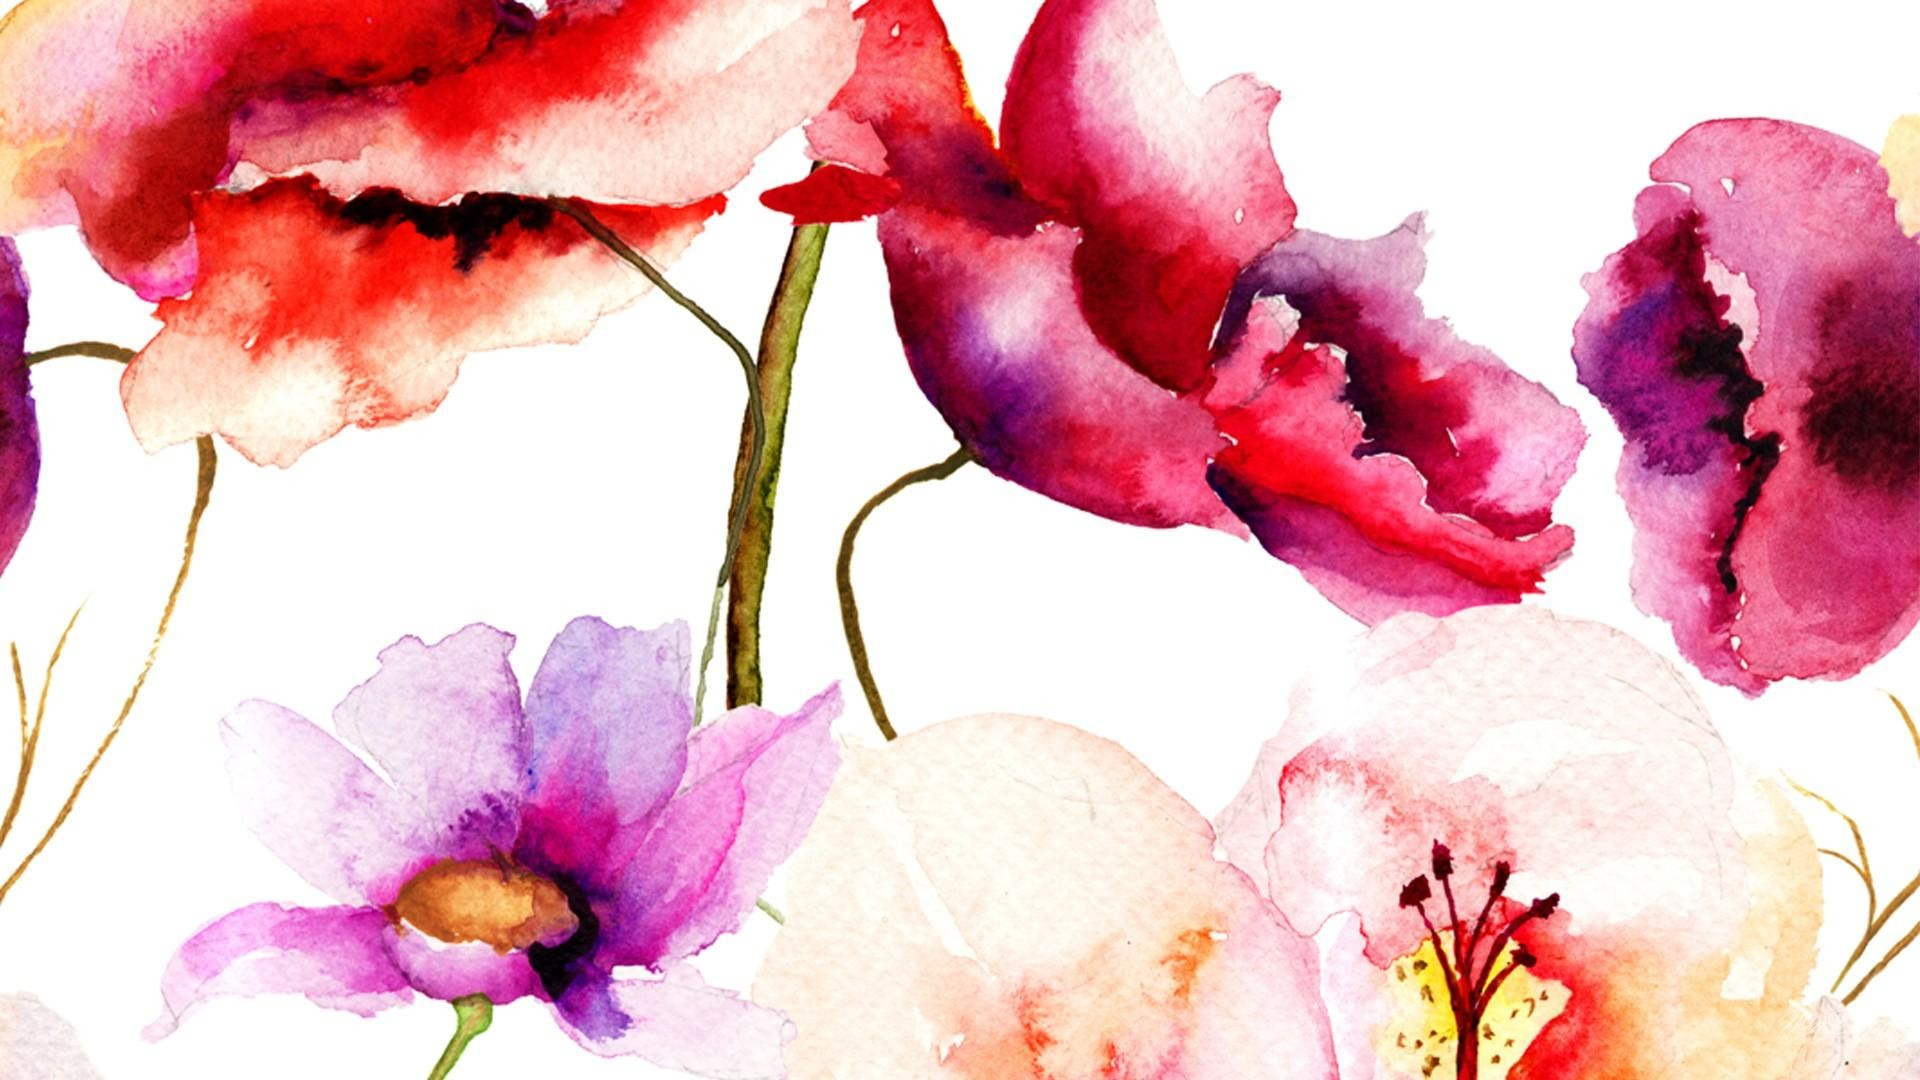 Flowers Wallpapers For Desktop Full Size Hd Watercolor Iphone Wallpaper 72 Images